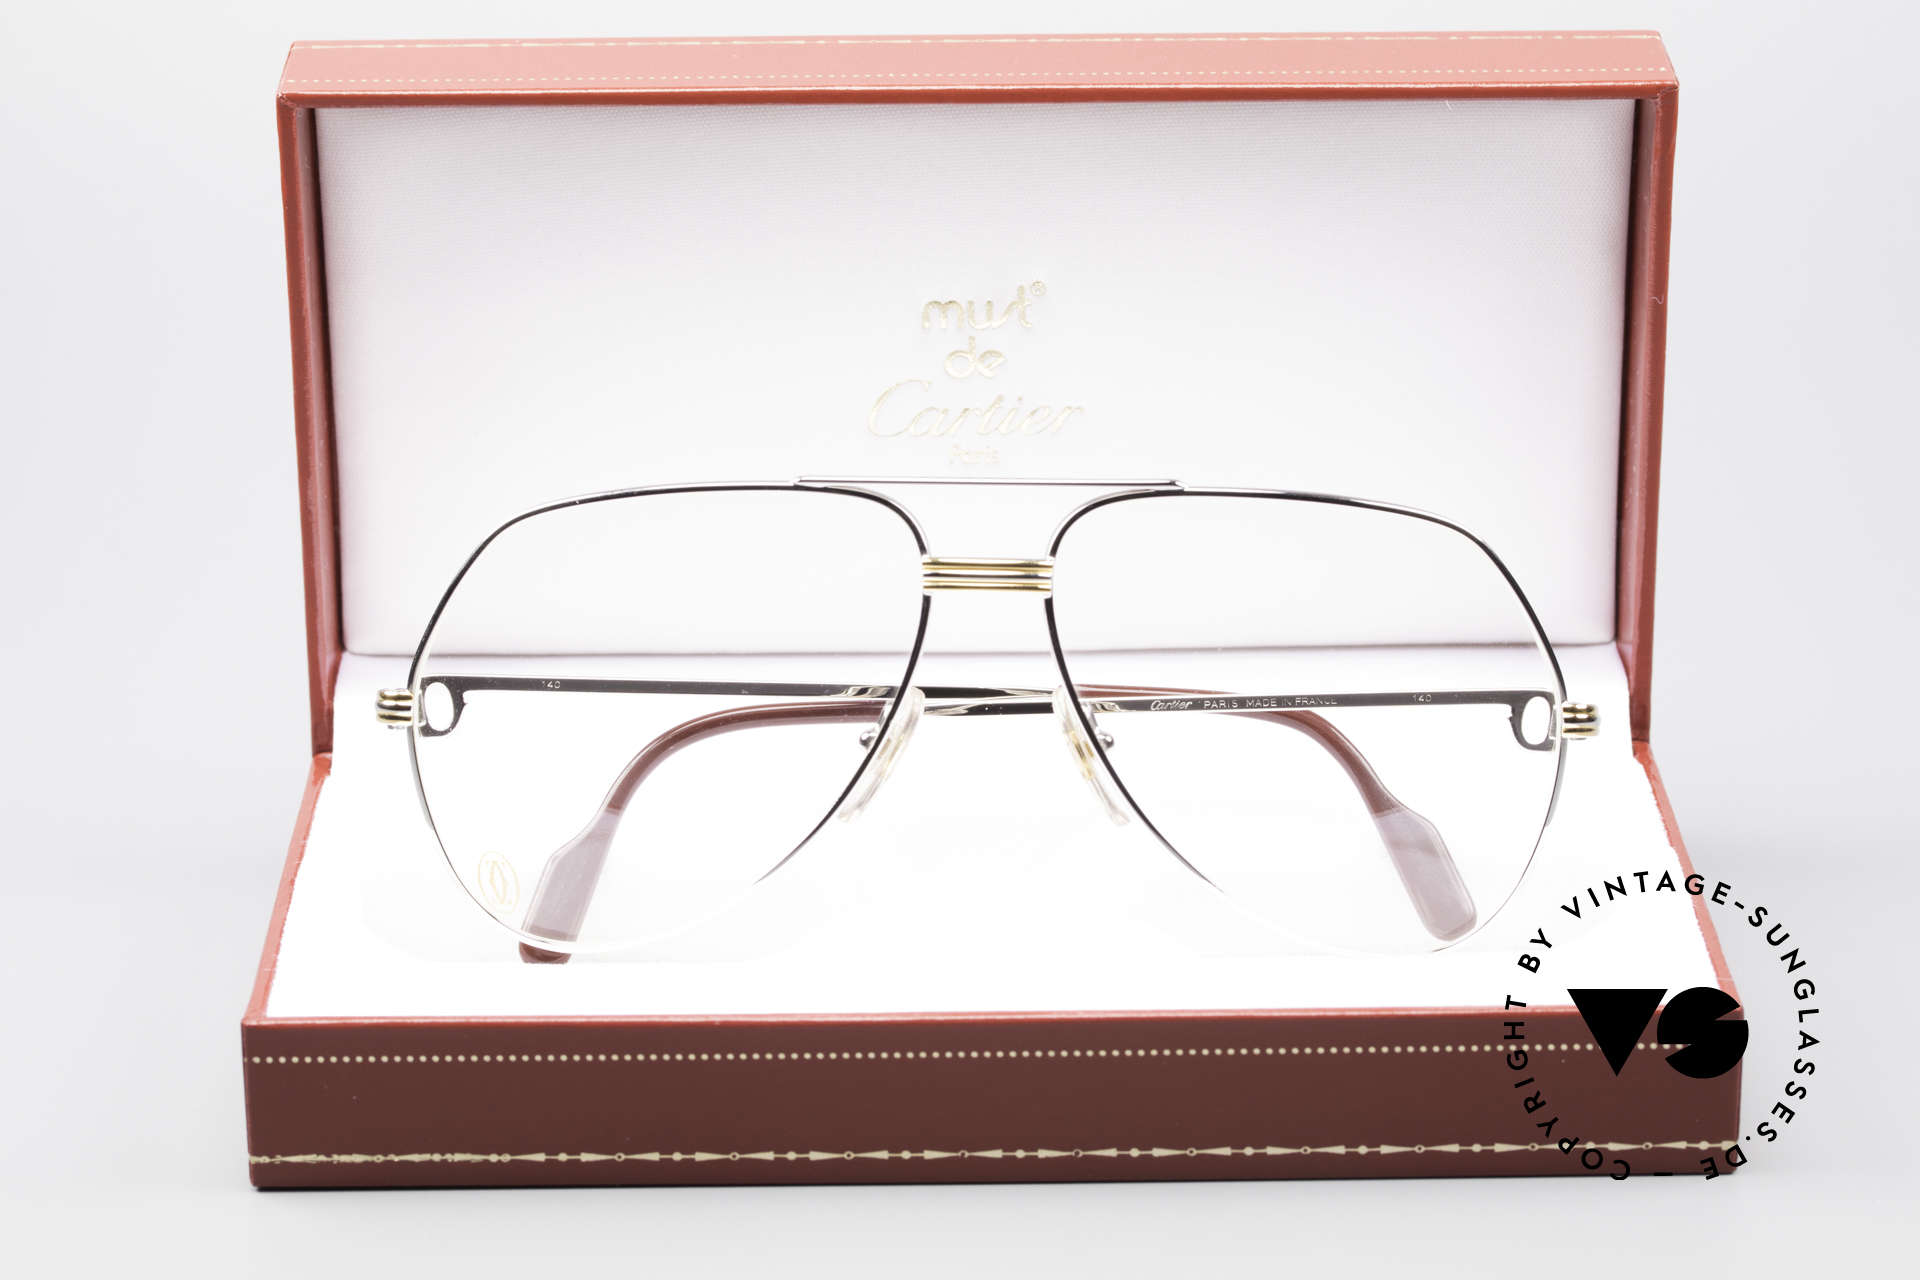 Cartier Vendome LC - L Platinum Finish Frame Luxury, unworn rarity with orig. packing; hard to find these days, Made for Men